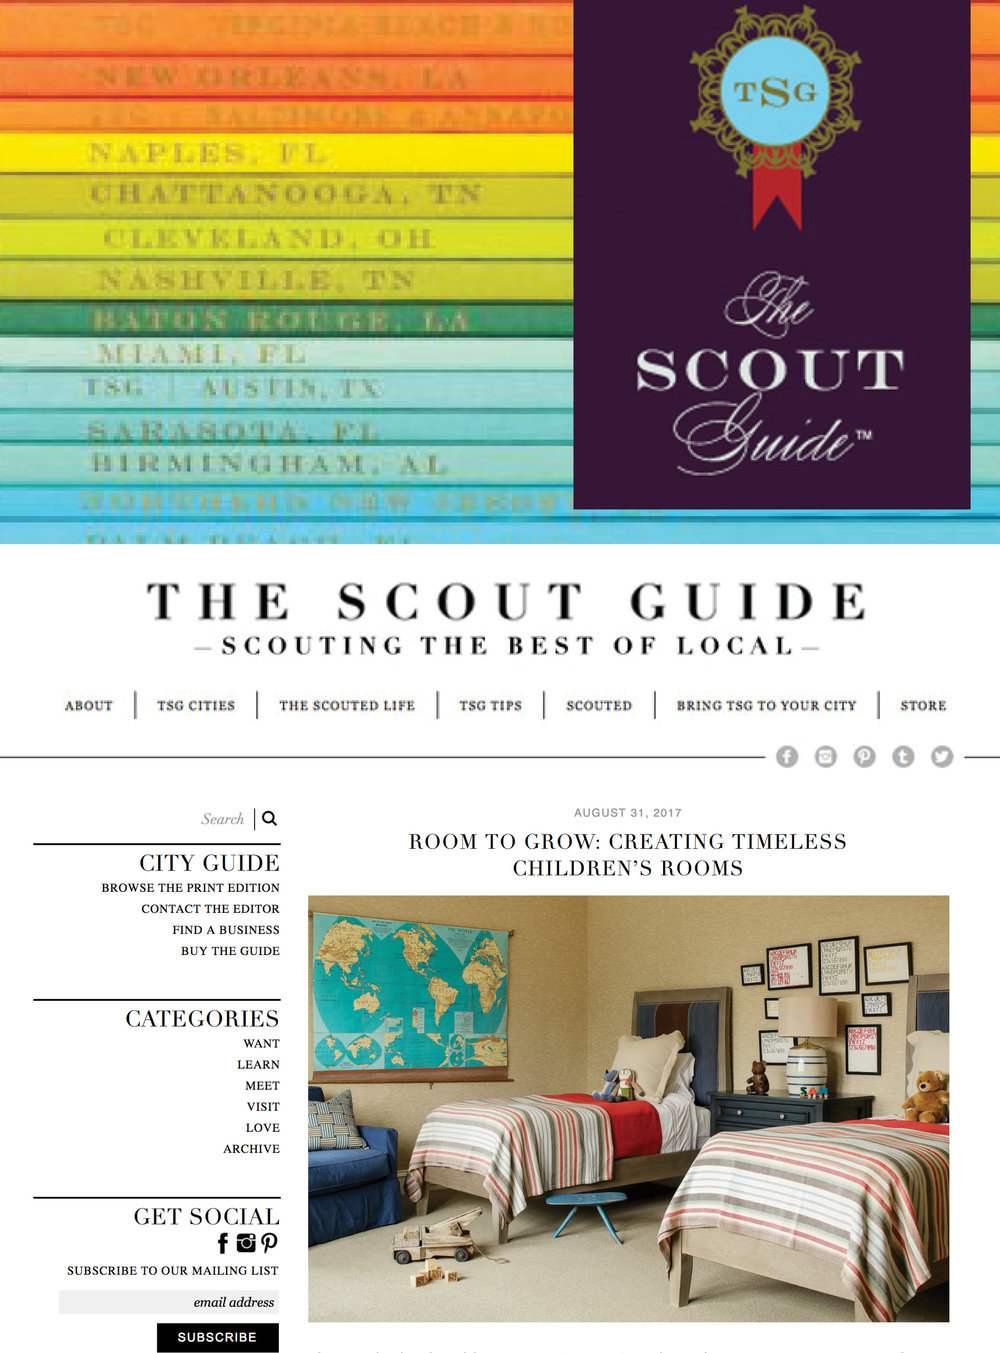 ROOM TO GROW. THE SCOUT GUIDE 2017